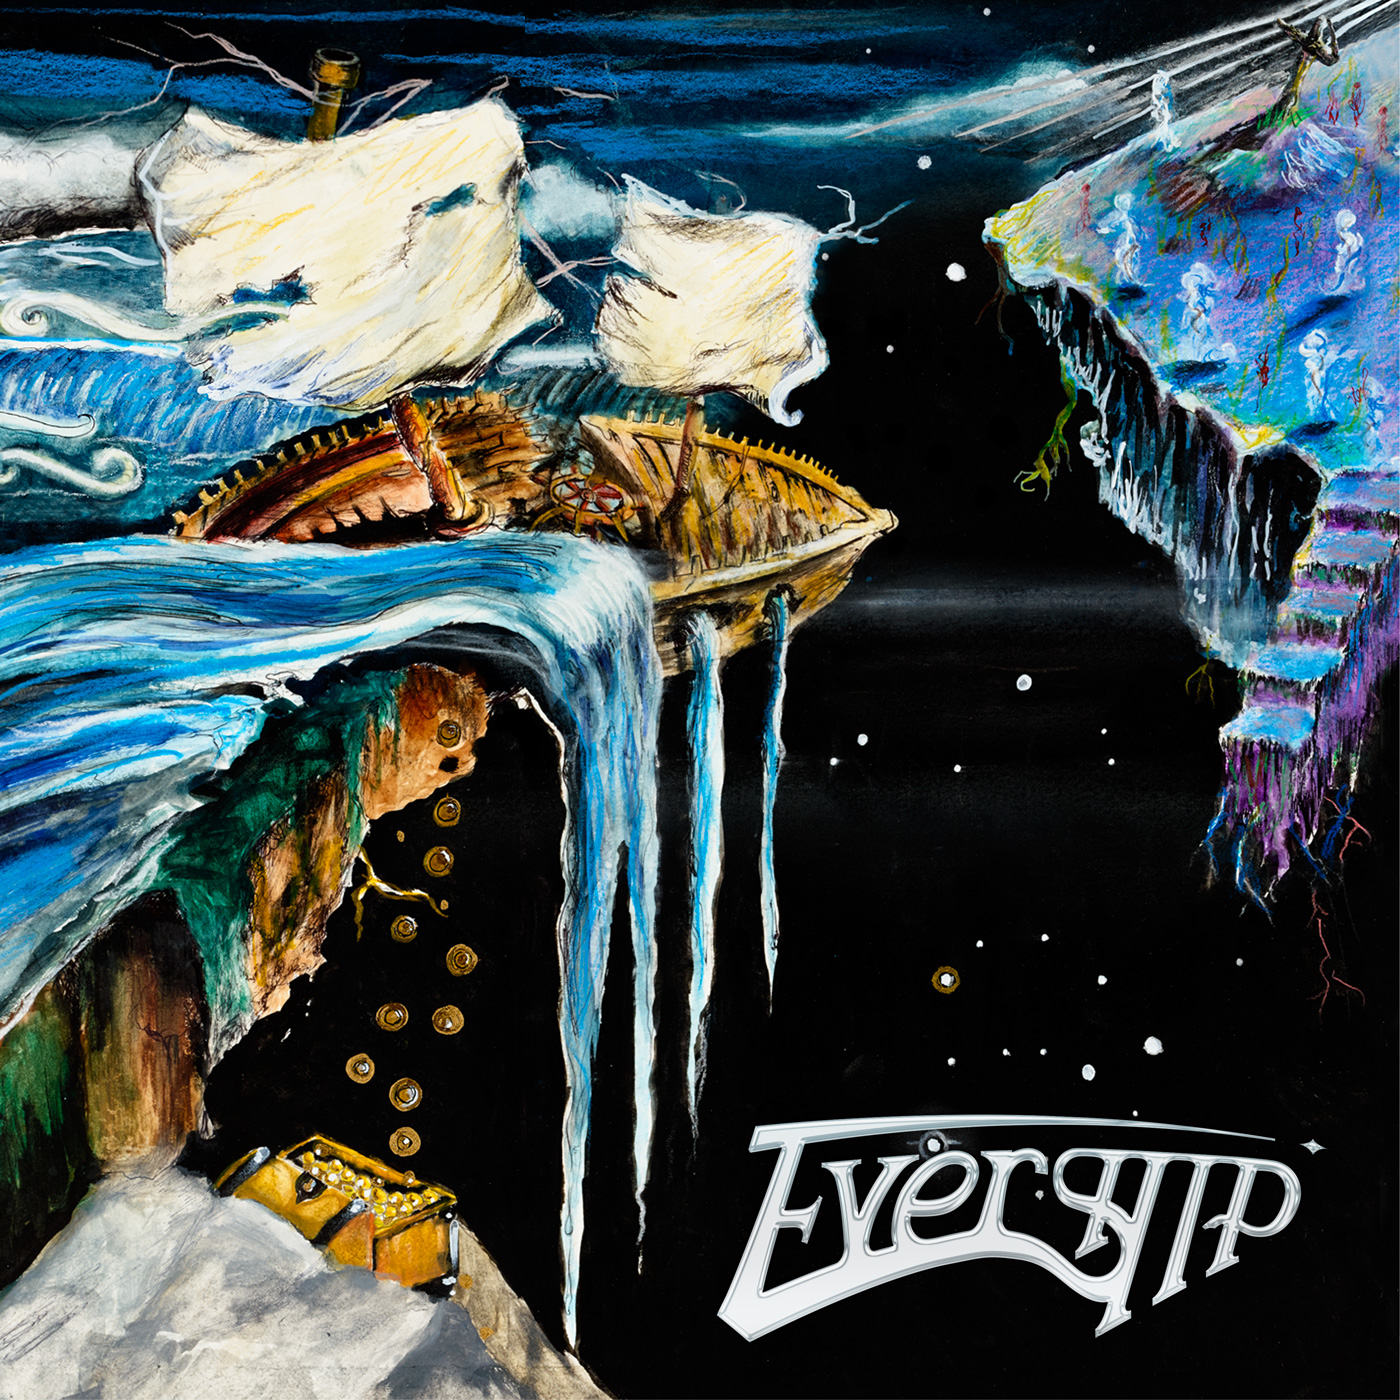 evership-album-cover